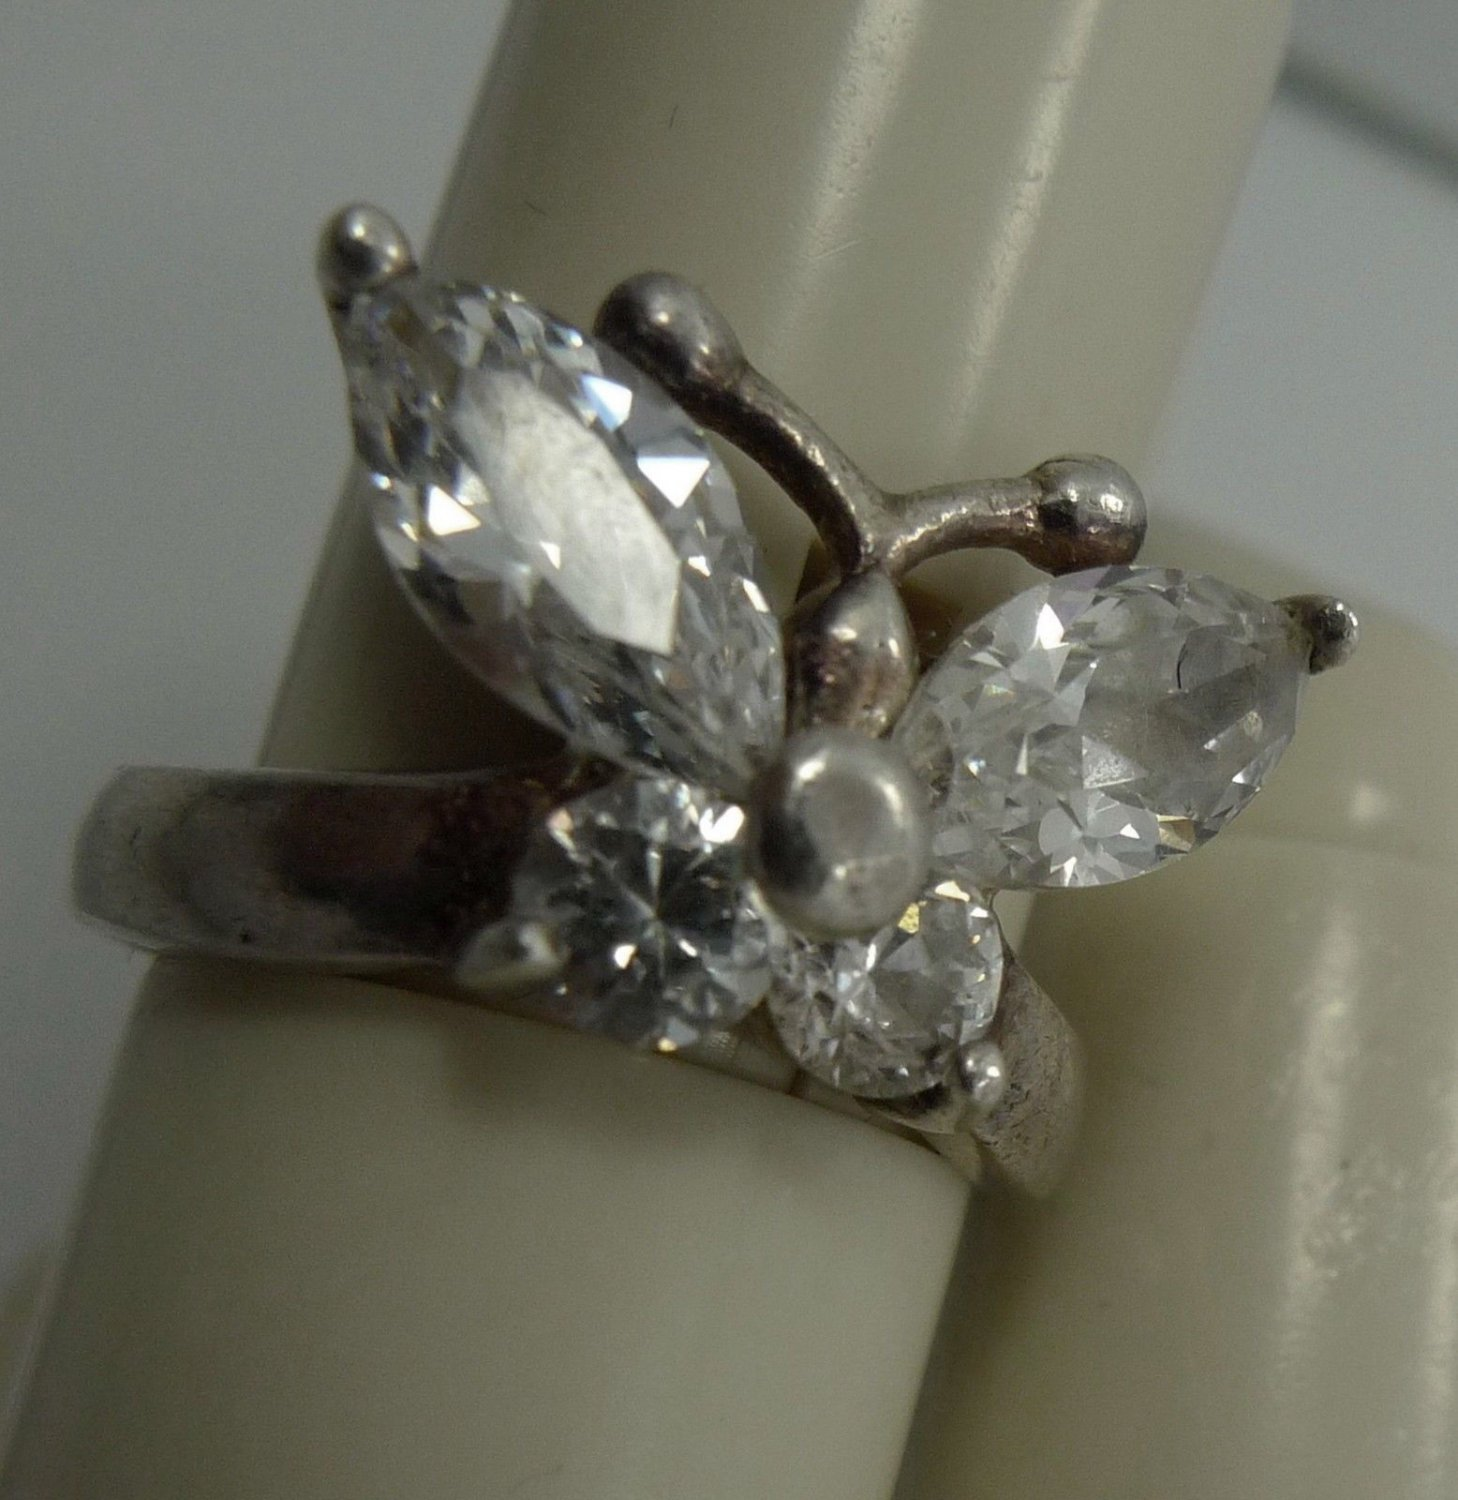 Size 5.5 Ring : Butterfly Sterling Silver & Mostley CZ 18mm at the Widest Point